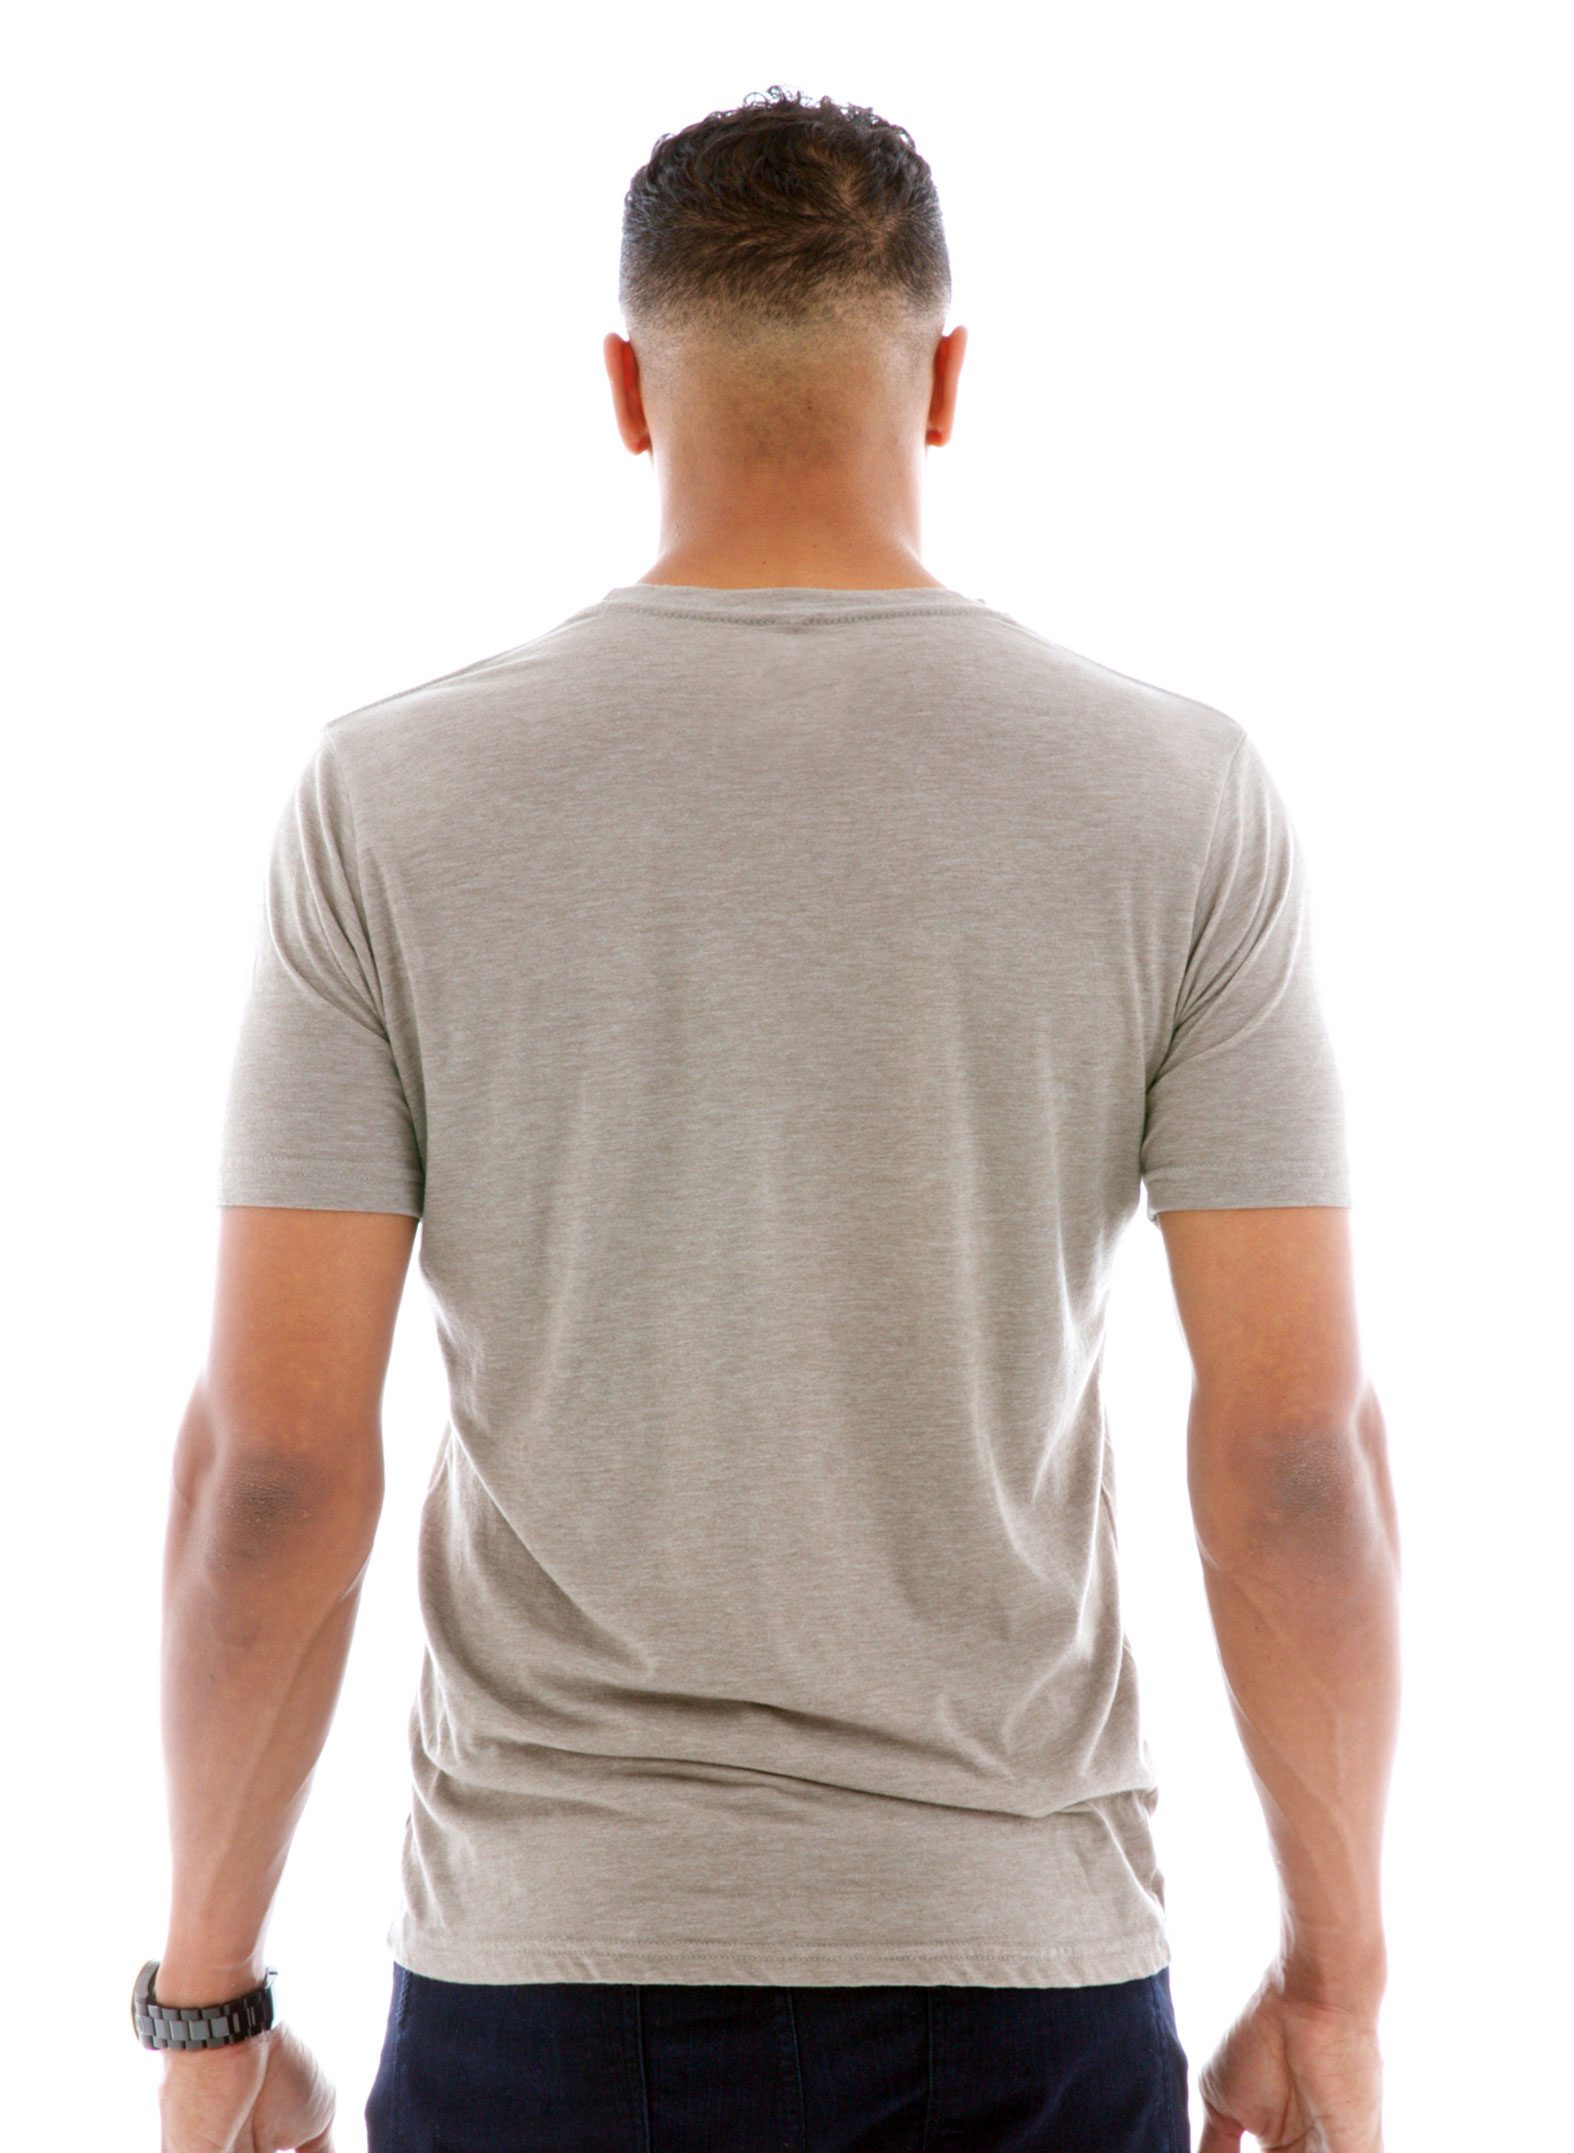 Heathered Crew Short Sleeve T-Shirt Back View